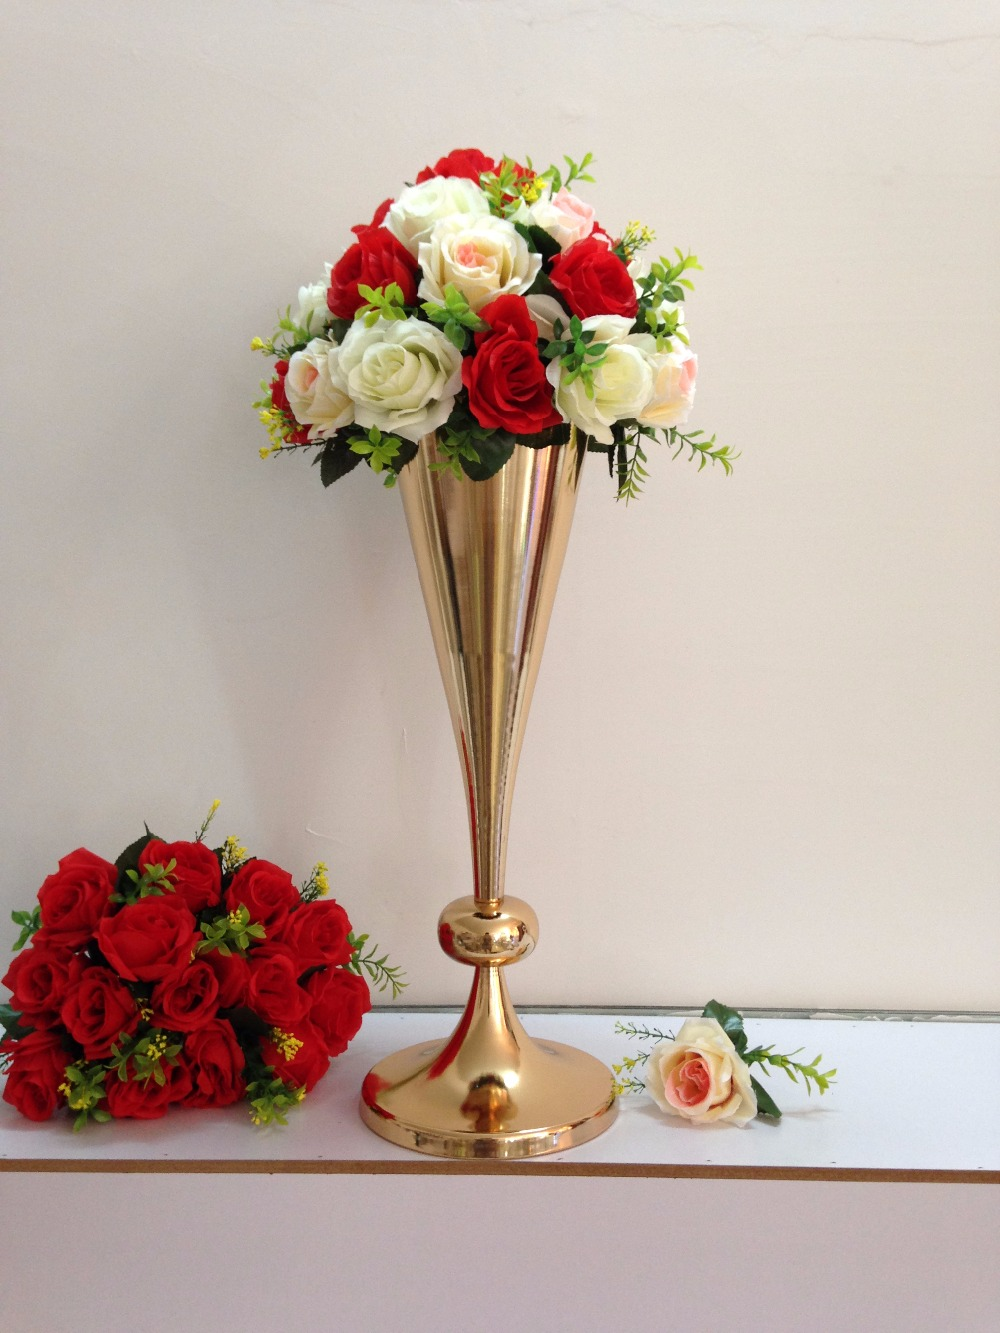 New style 54cm 212 gold wedding flower vase wedding table stand new style 54cm 212 gold wedding flower vase wedding table stand wedding decoration wedding road leads 10 pcslot in vases from home garden on izmirmasajfo